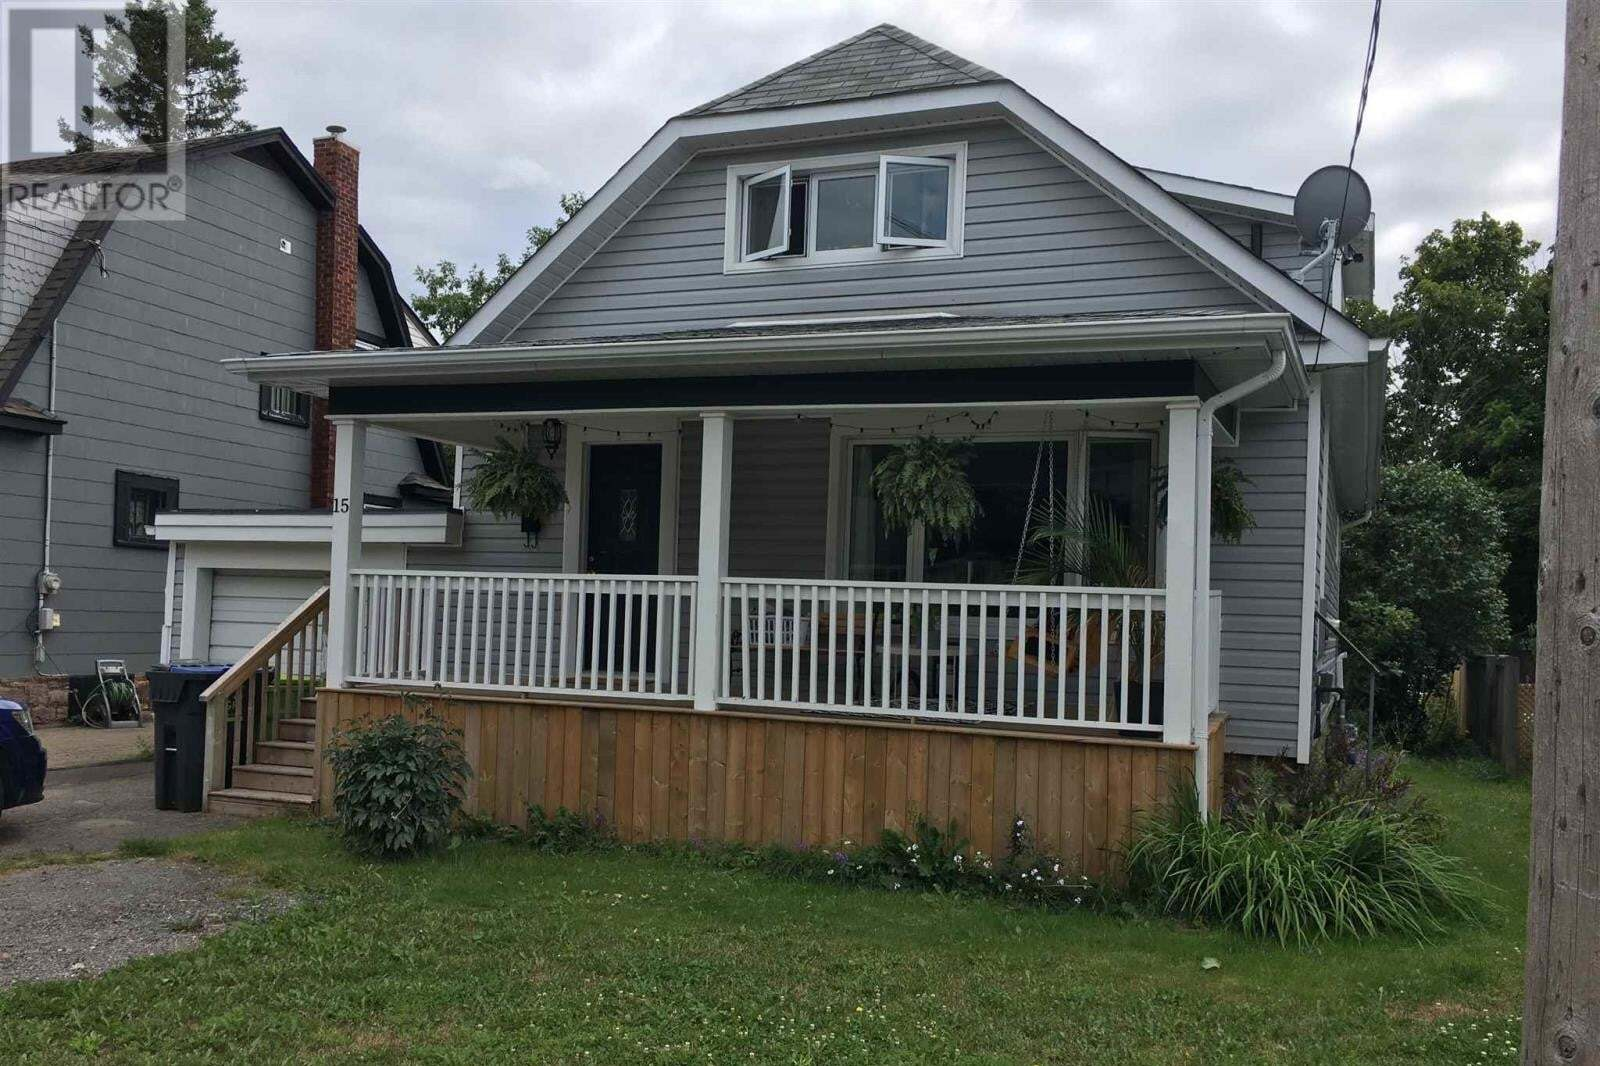 House for sale at 15 Euclid Rd Sault Ste. Marie Ontario - MLS: SM129361